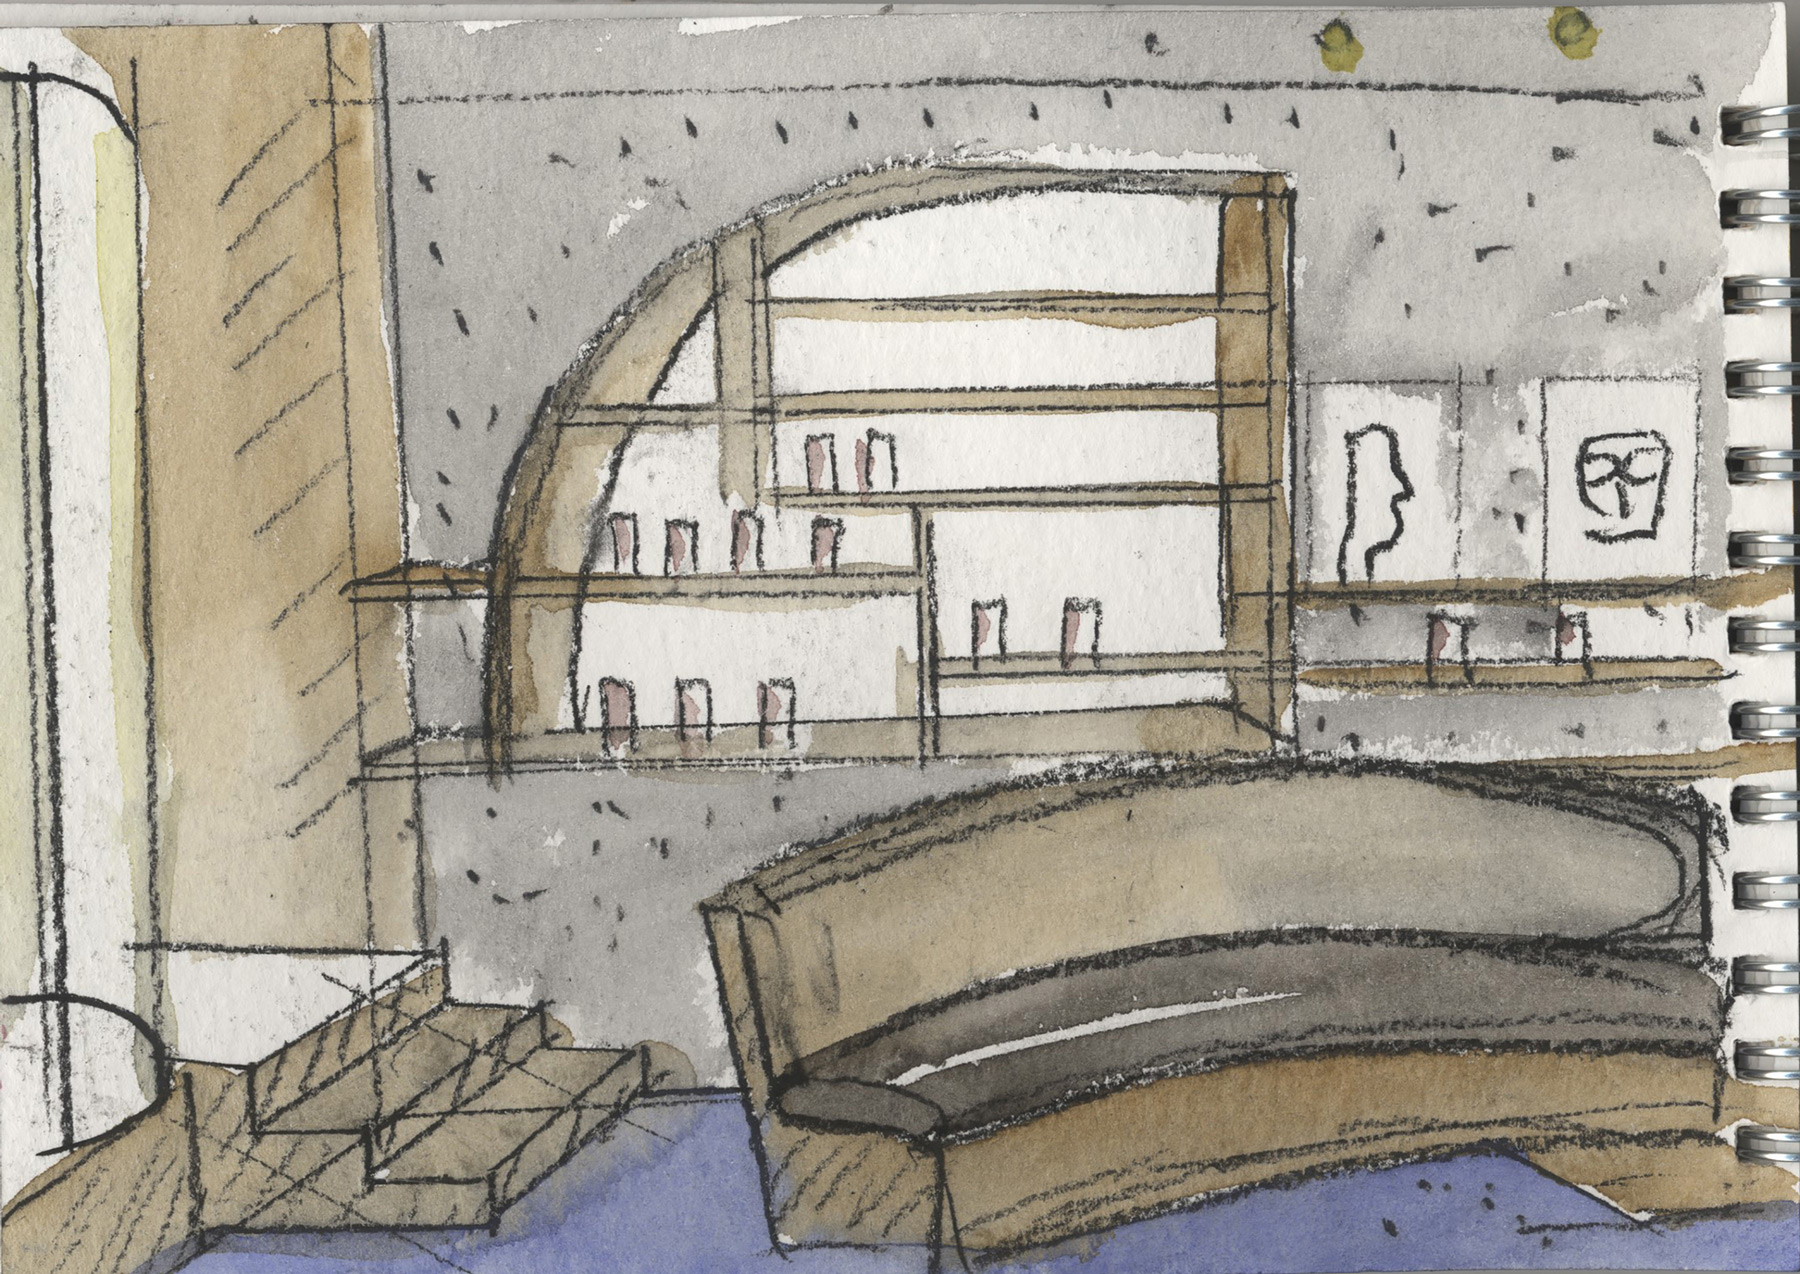 Frederic Malle / Steven Holl Architects (6)